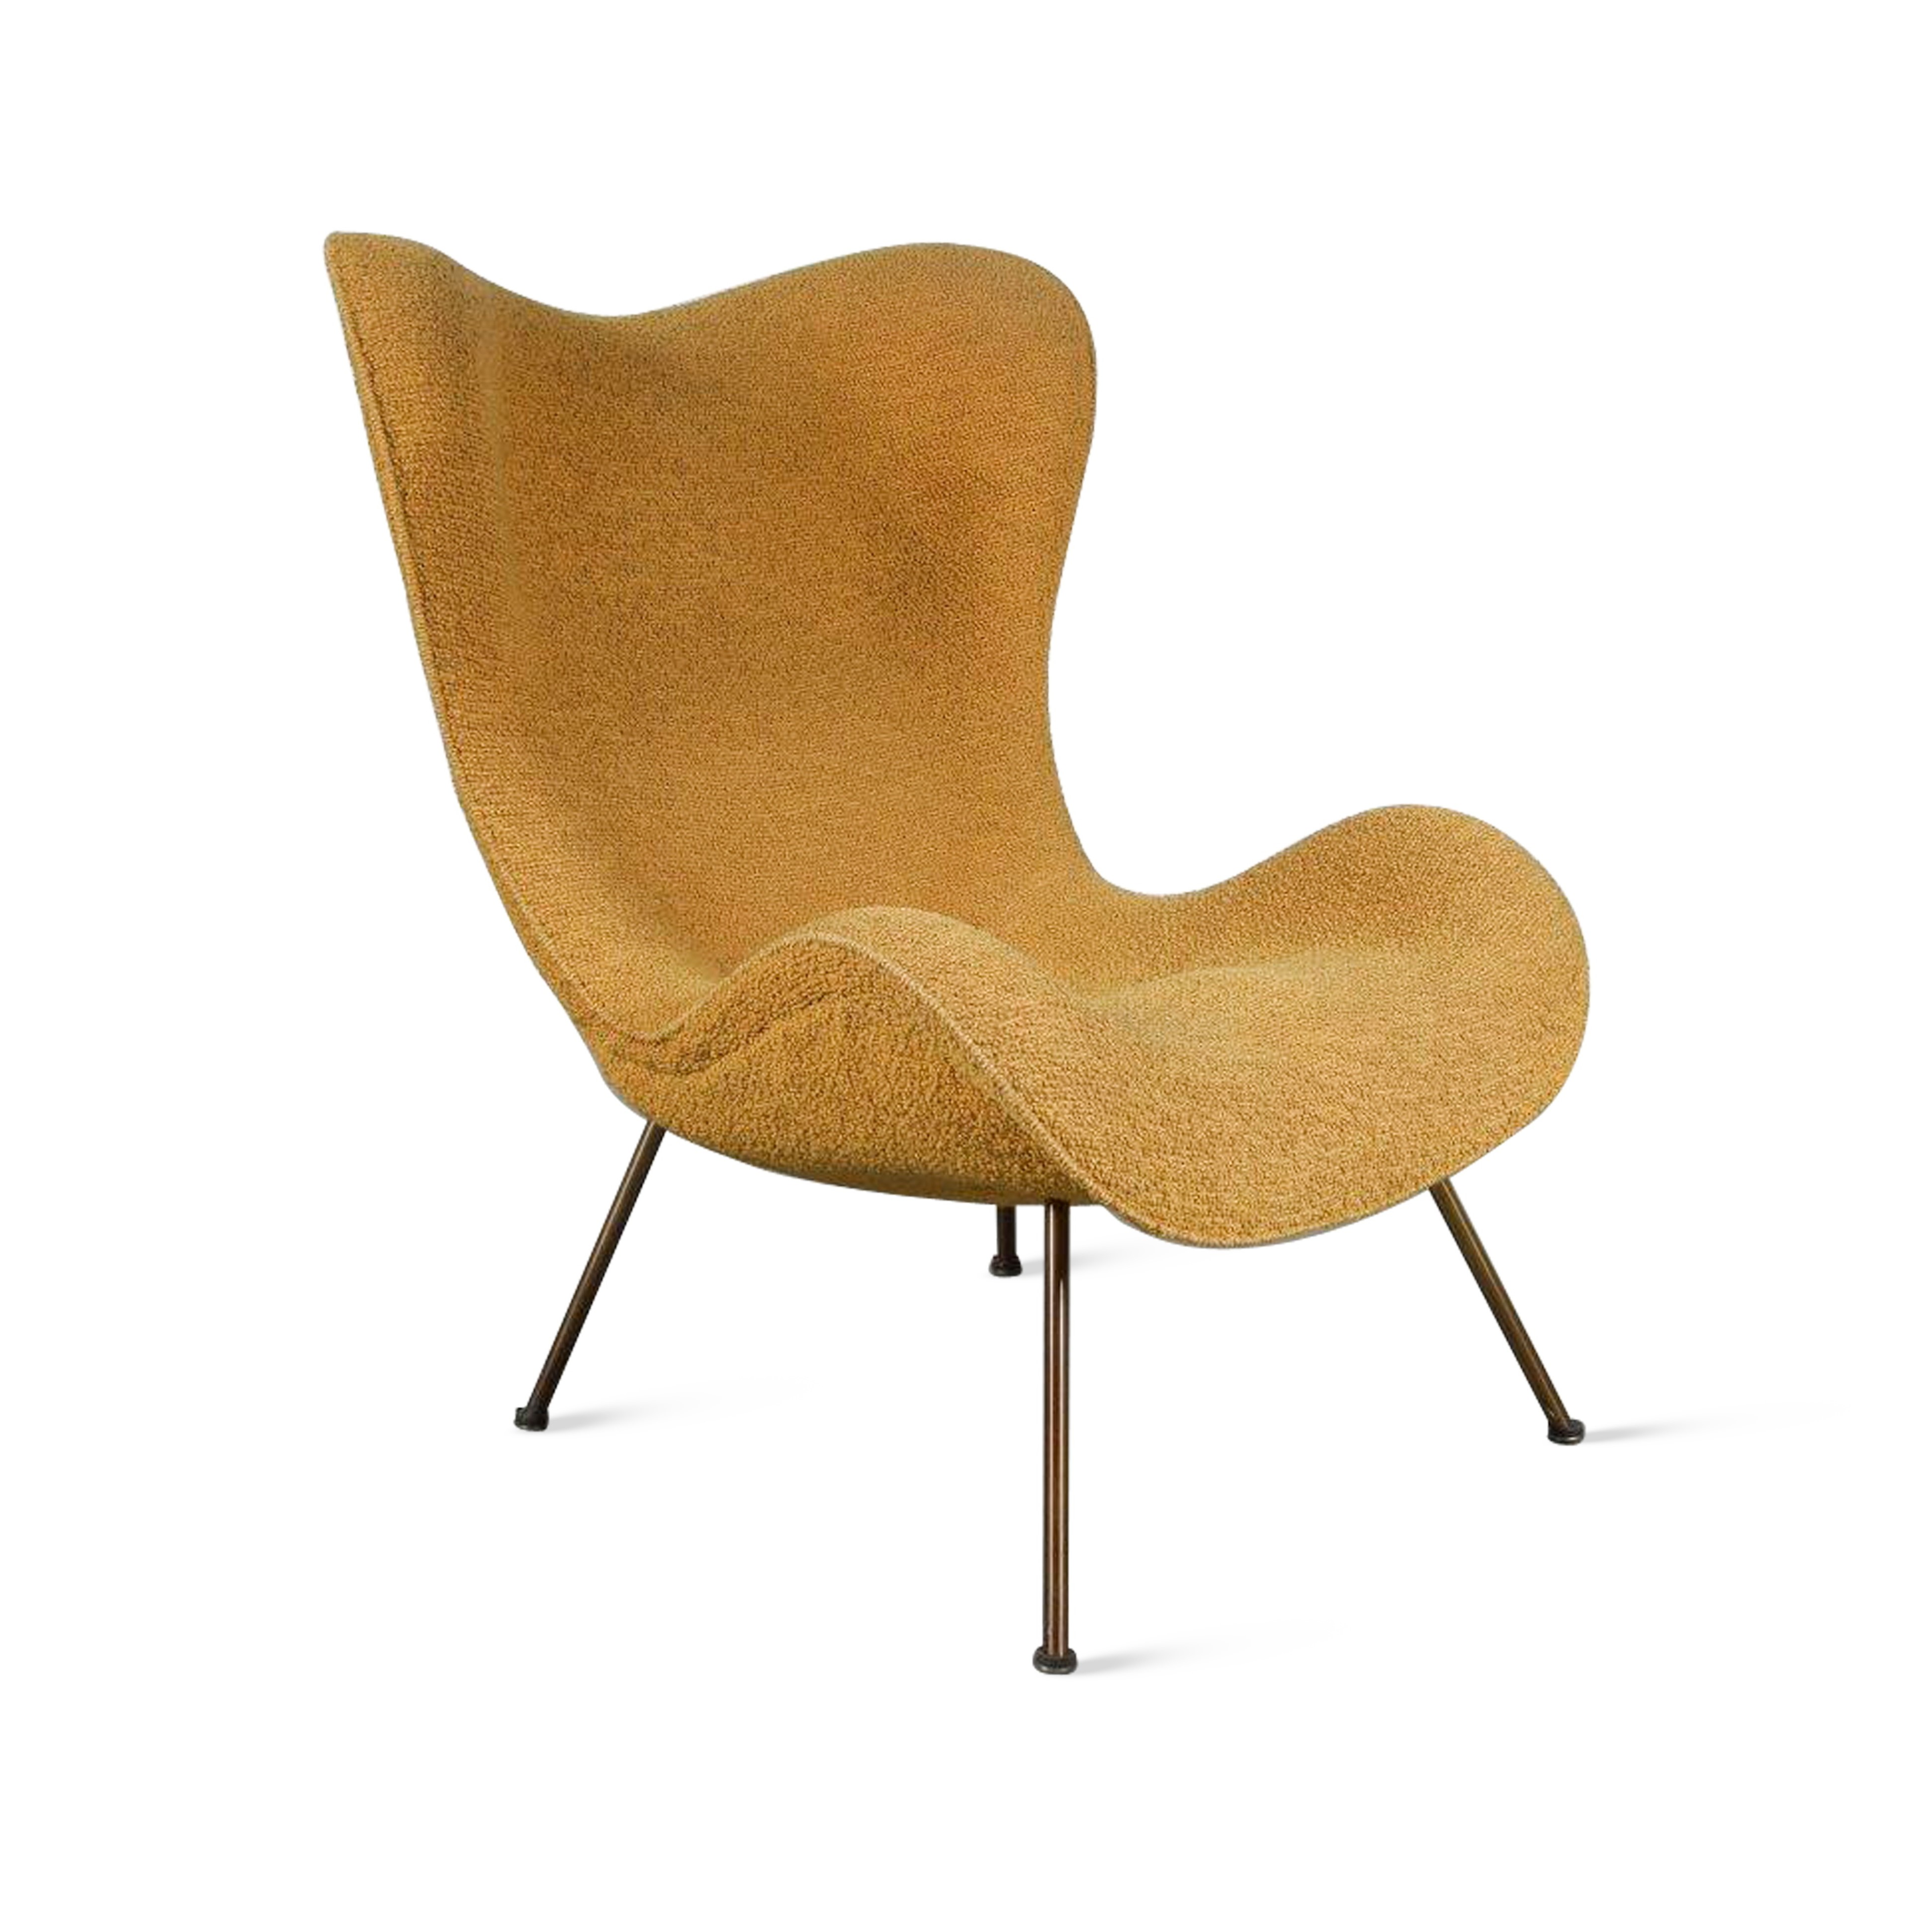 "m23825 1950s Original ""Madame"" Chair by Fritz Neth for Correcta, Germany, 1950s Fritz Neth Correcta / Germany"